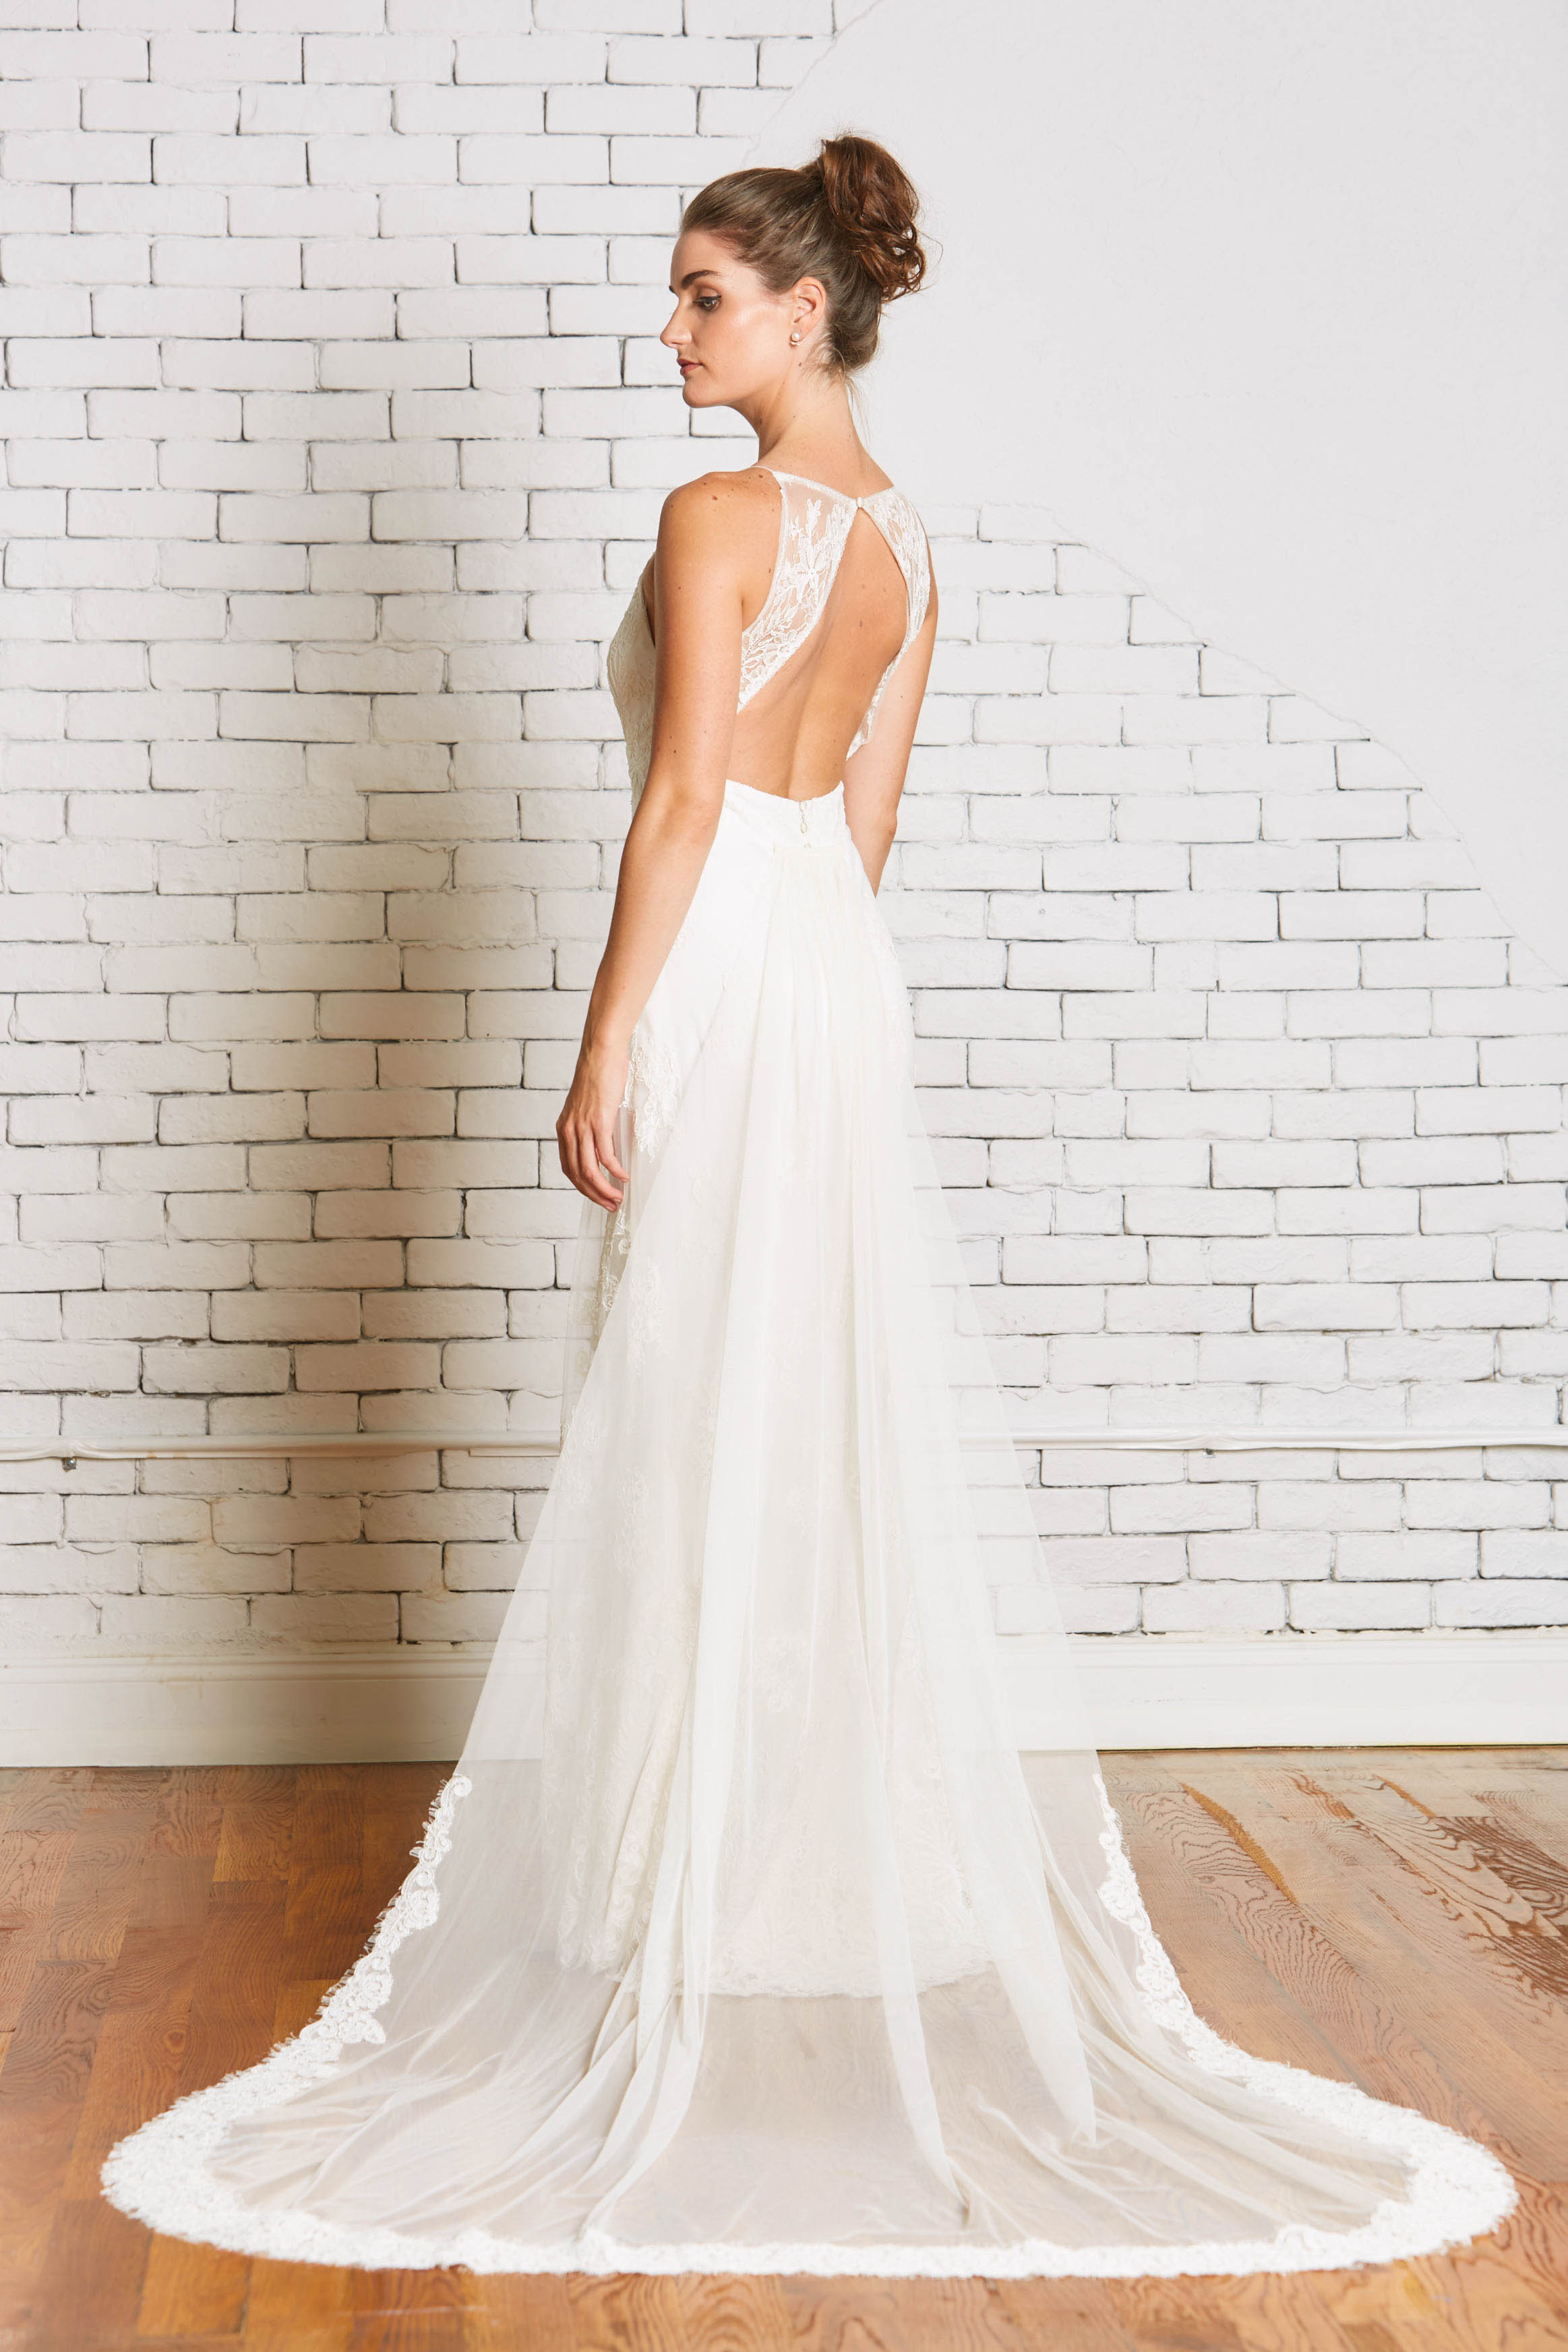 9.Rebecca_Schoneveld_Frances_Gown_With_Train_Back-18.jpg